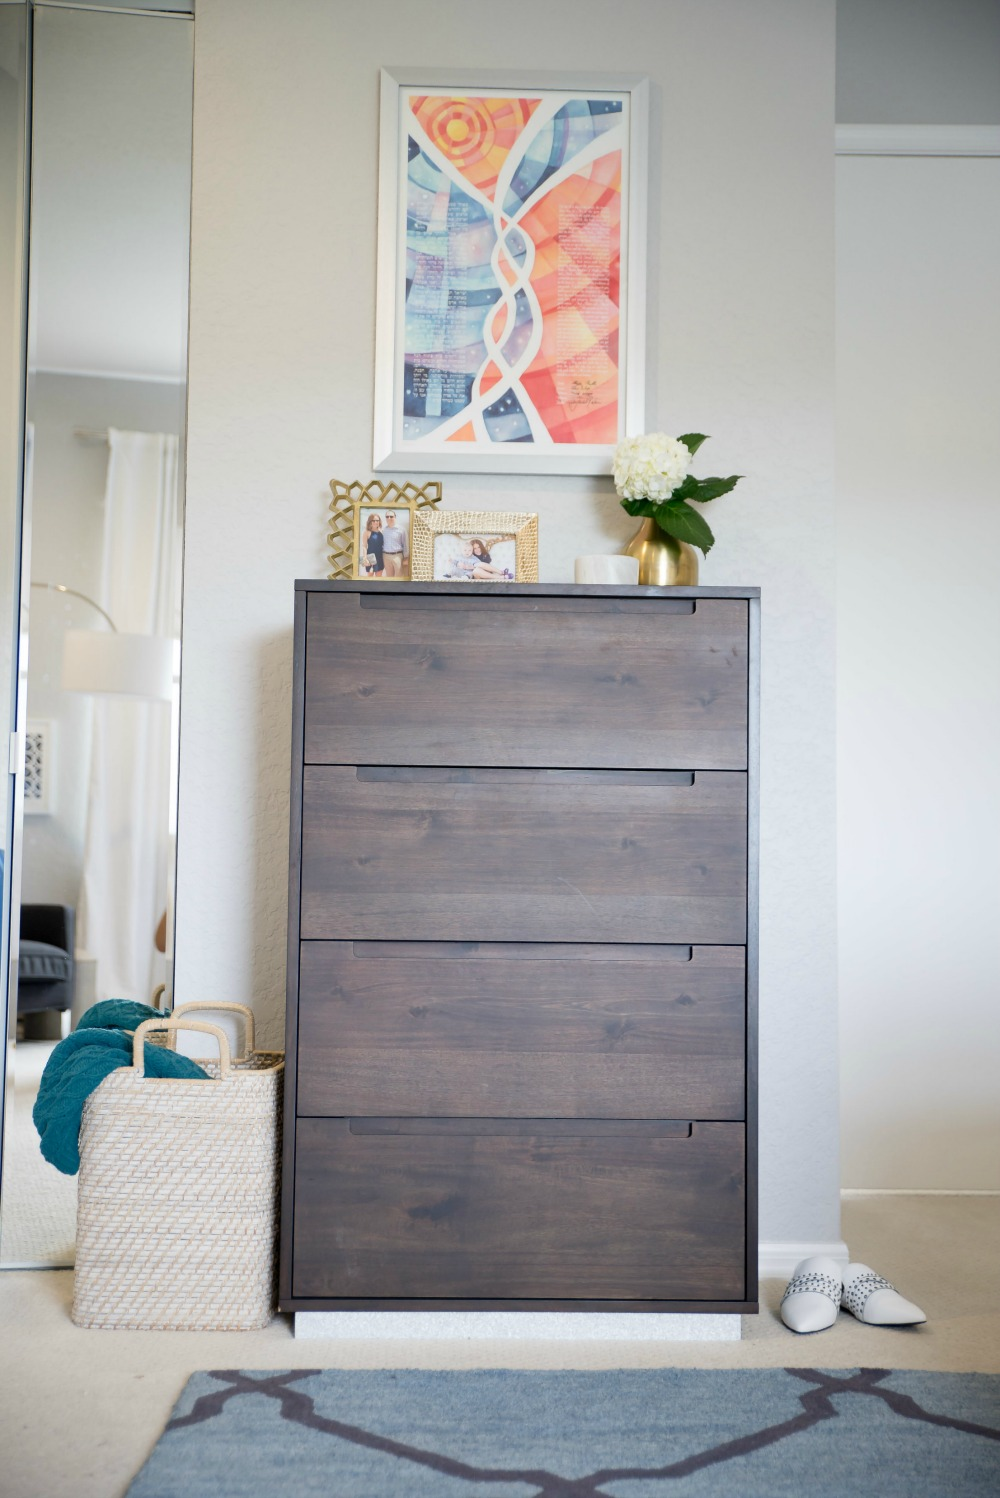 Master bedroom refresh -- bright and light master bedroom decor (before & after) with grey upholstered headboard by popular Florida style blogger The Modern Savvy